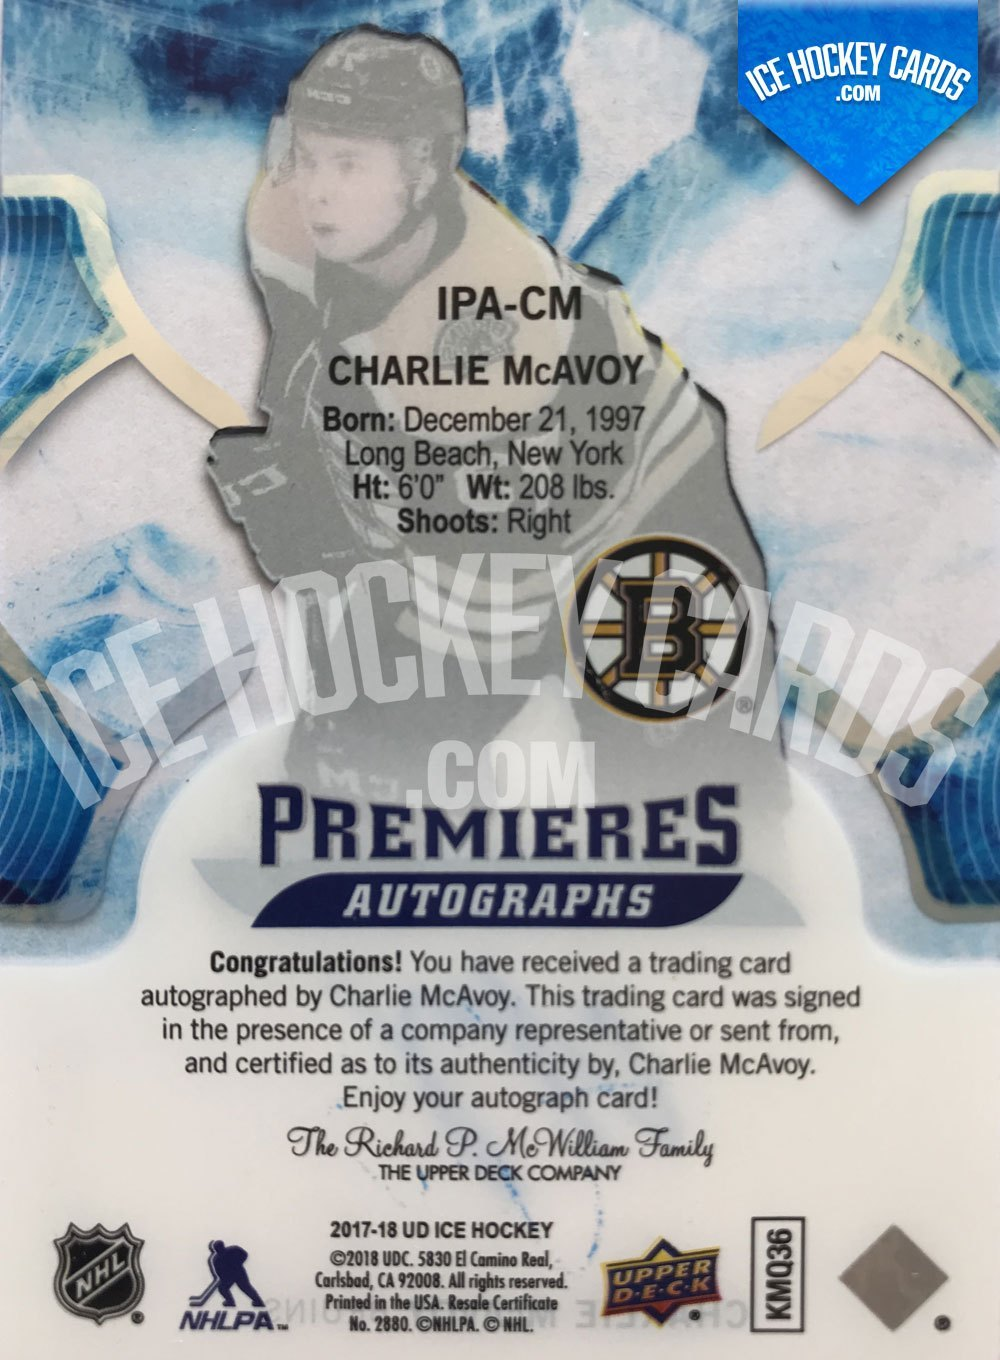 Upper Deck - ICE 17-18 - Charlie McAvoy Premieres Autographs Rookie Card back